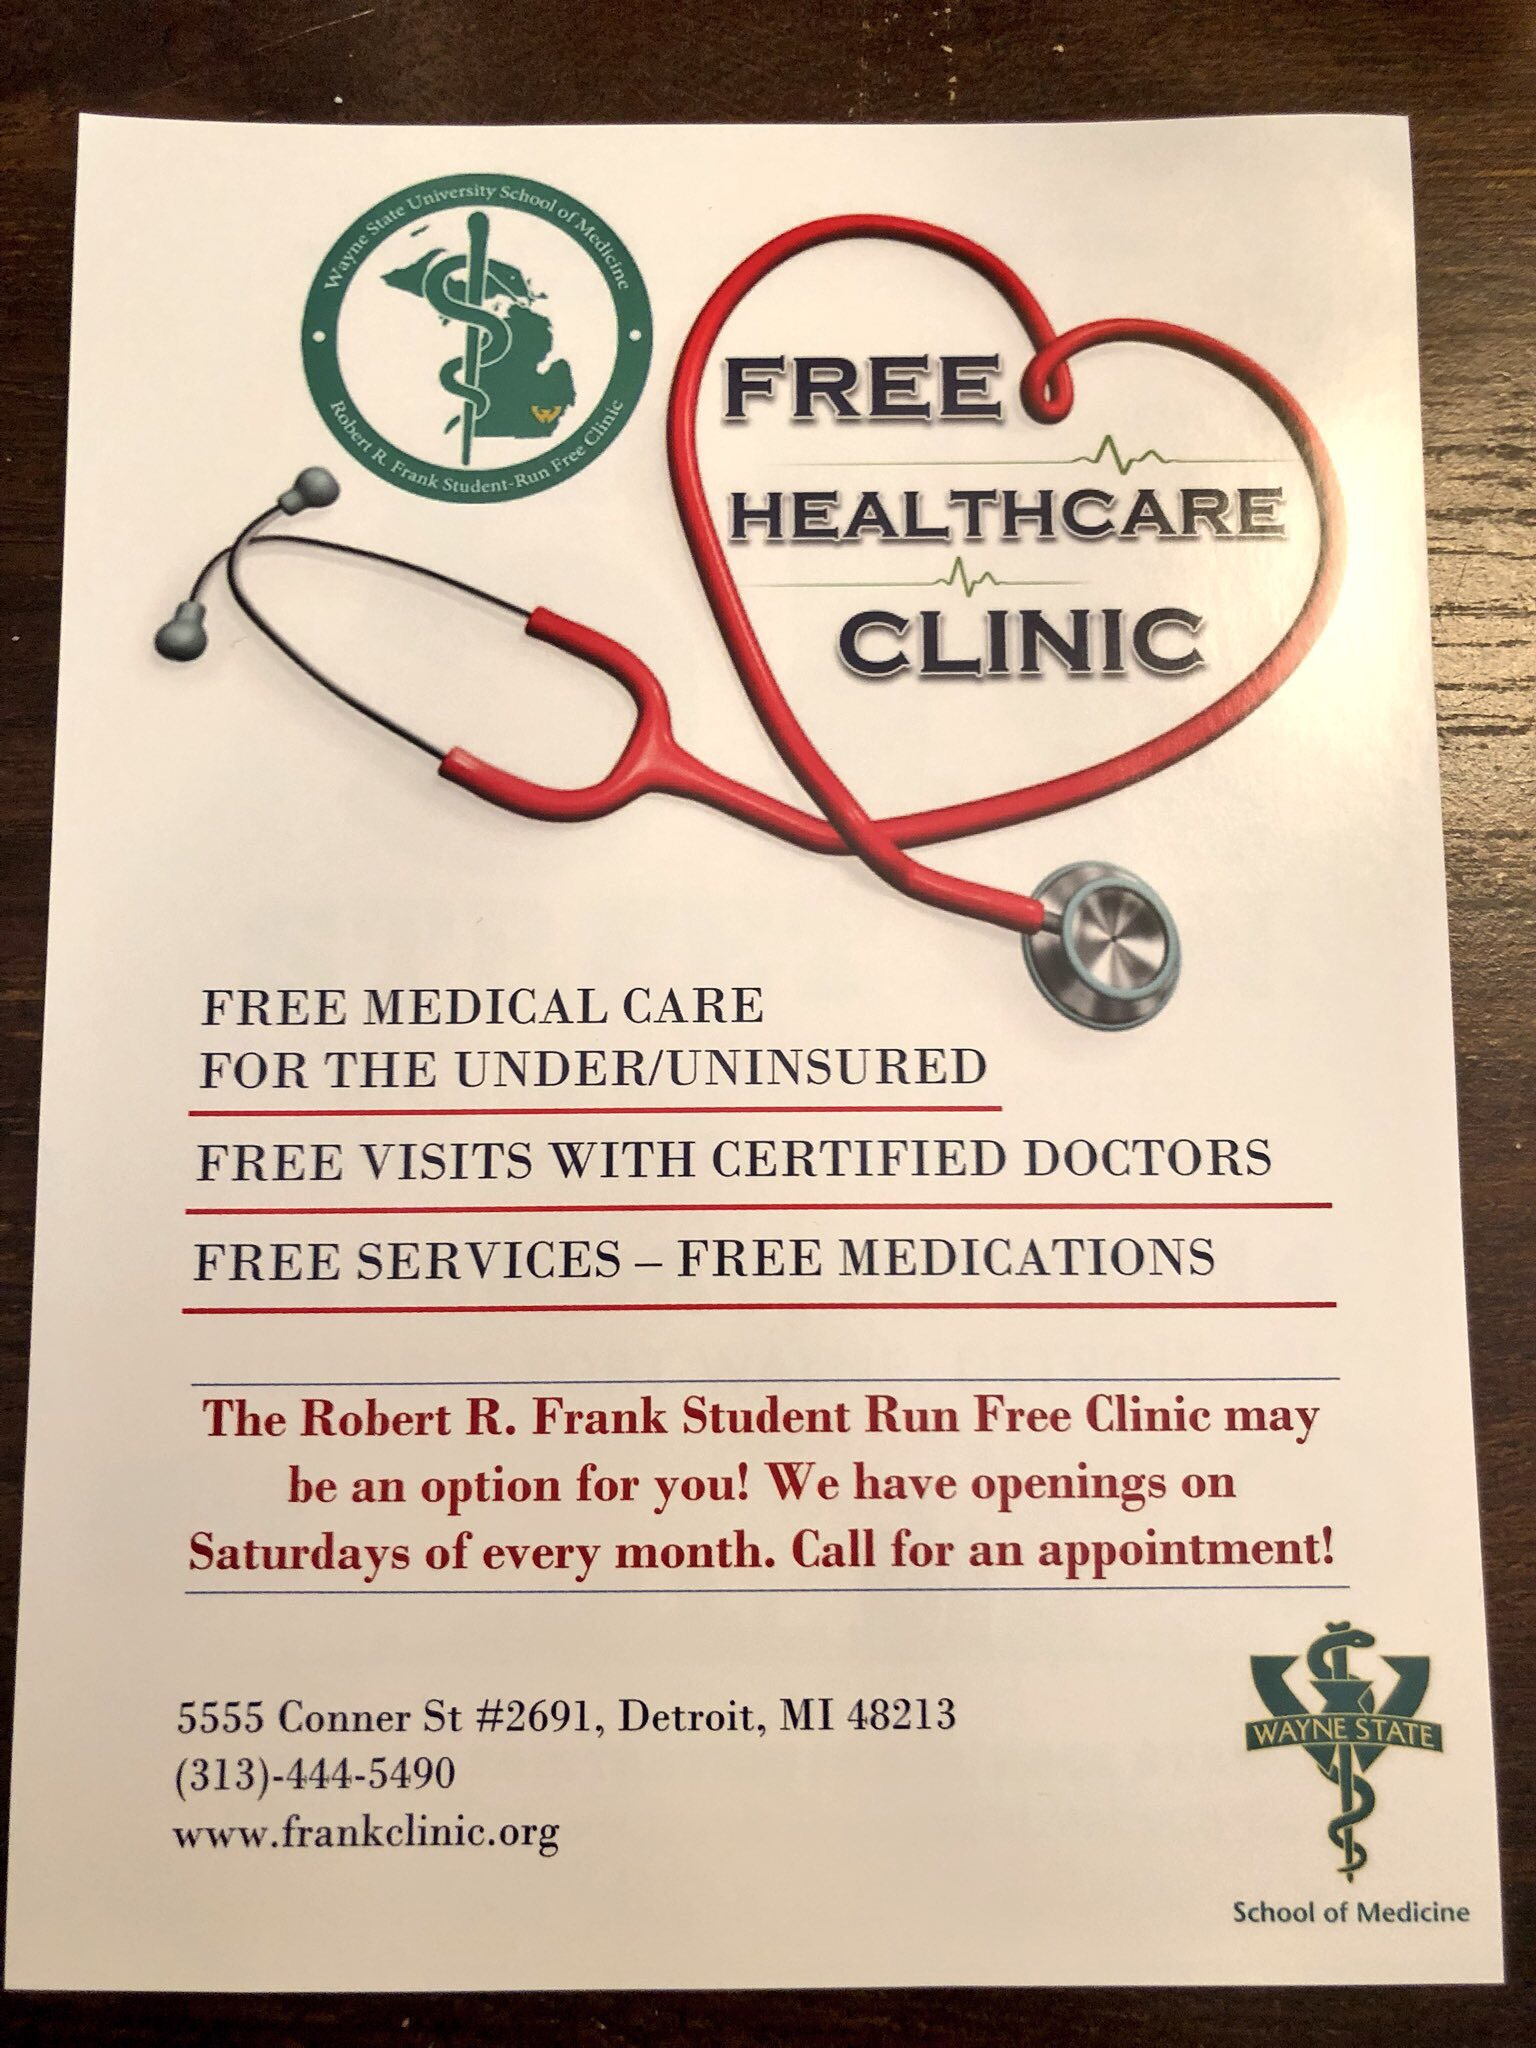 2018 Student Run Free Clinic Detroit Michigan Wayne State University School of Medicine flyer.jpg